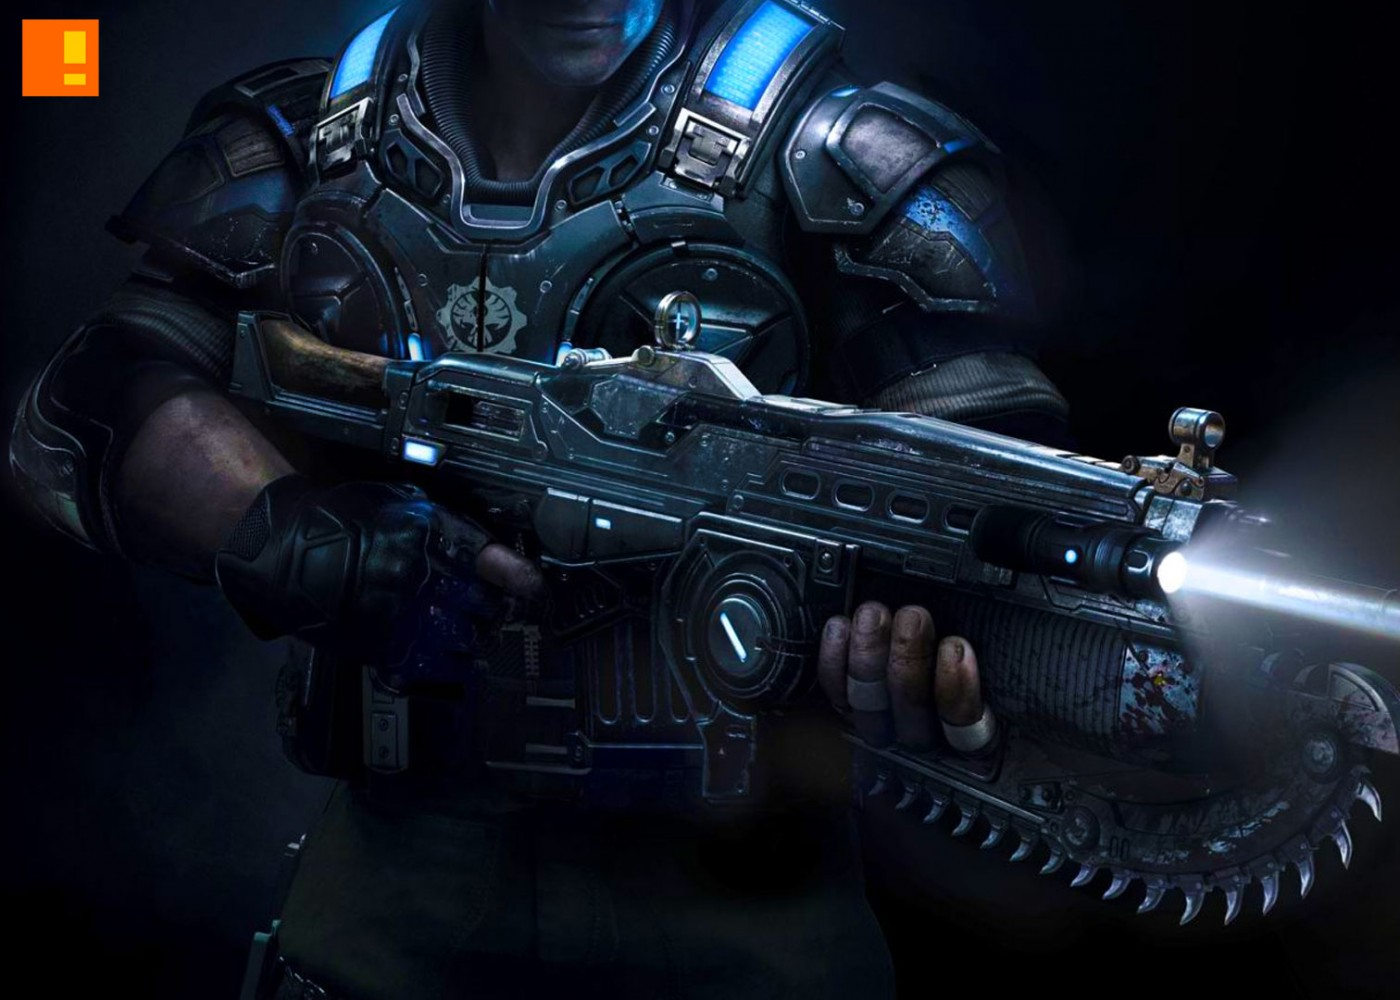 gears of war 4, gears of war, the action pixel, @theactionpixel, microsoft,release date, box art, cover art, gears 4